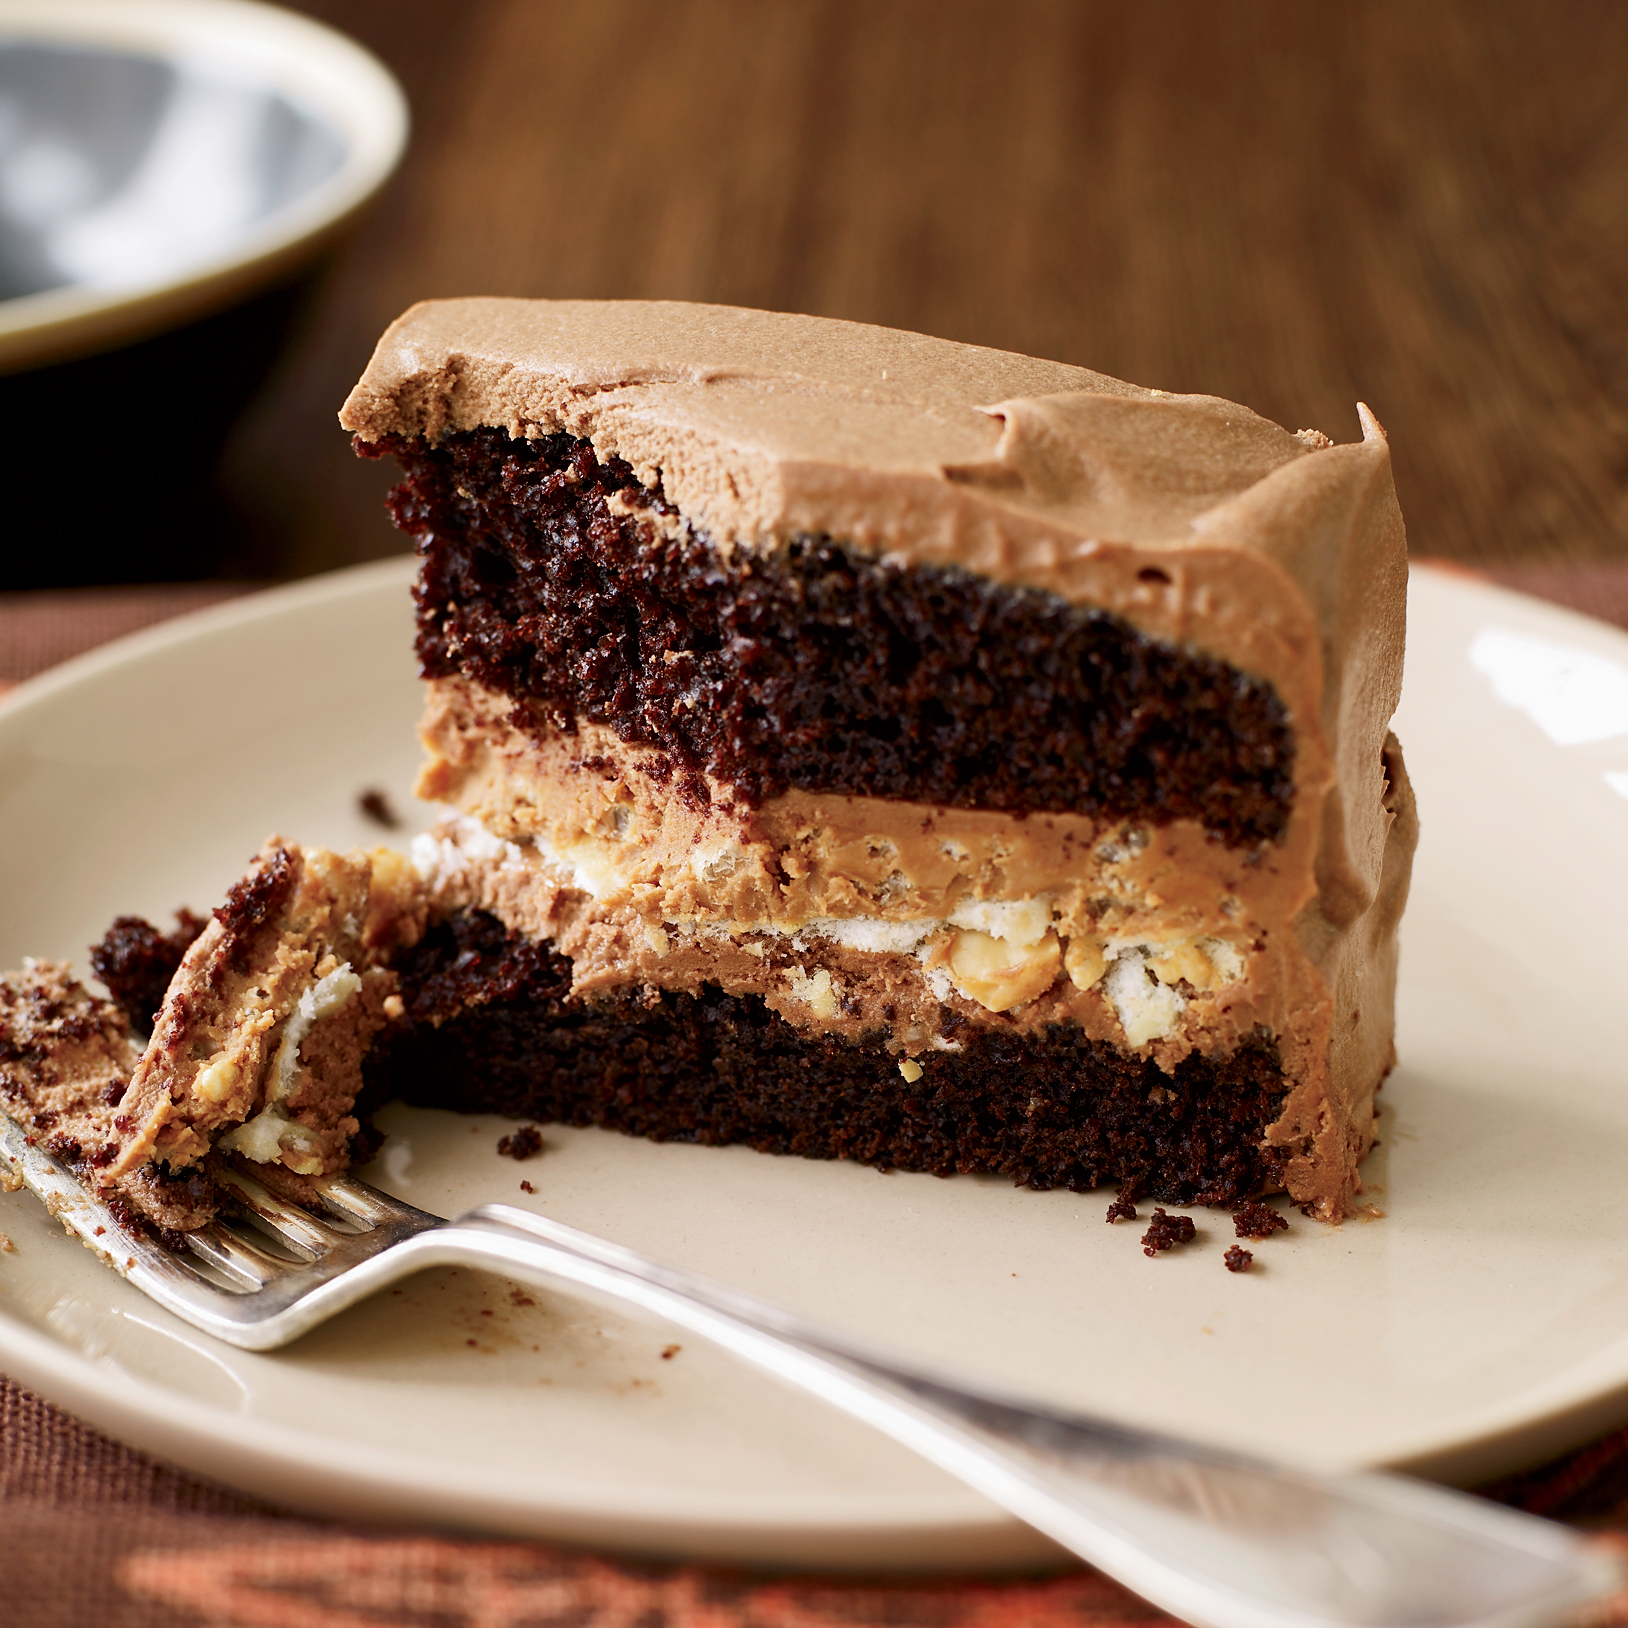 Chocolate Peanut Butter Stout Cake